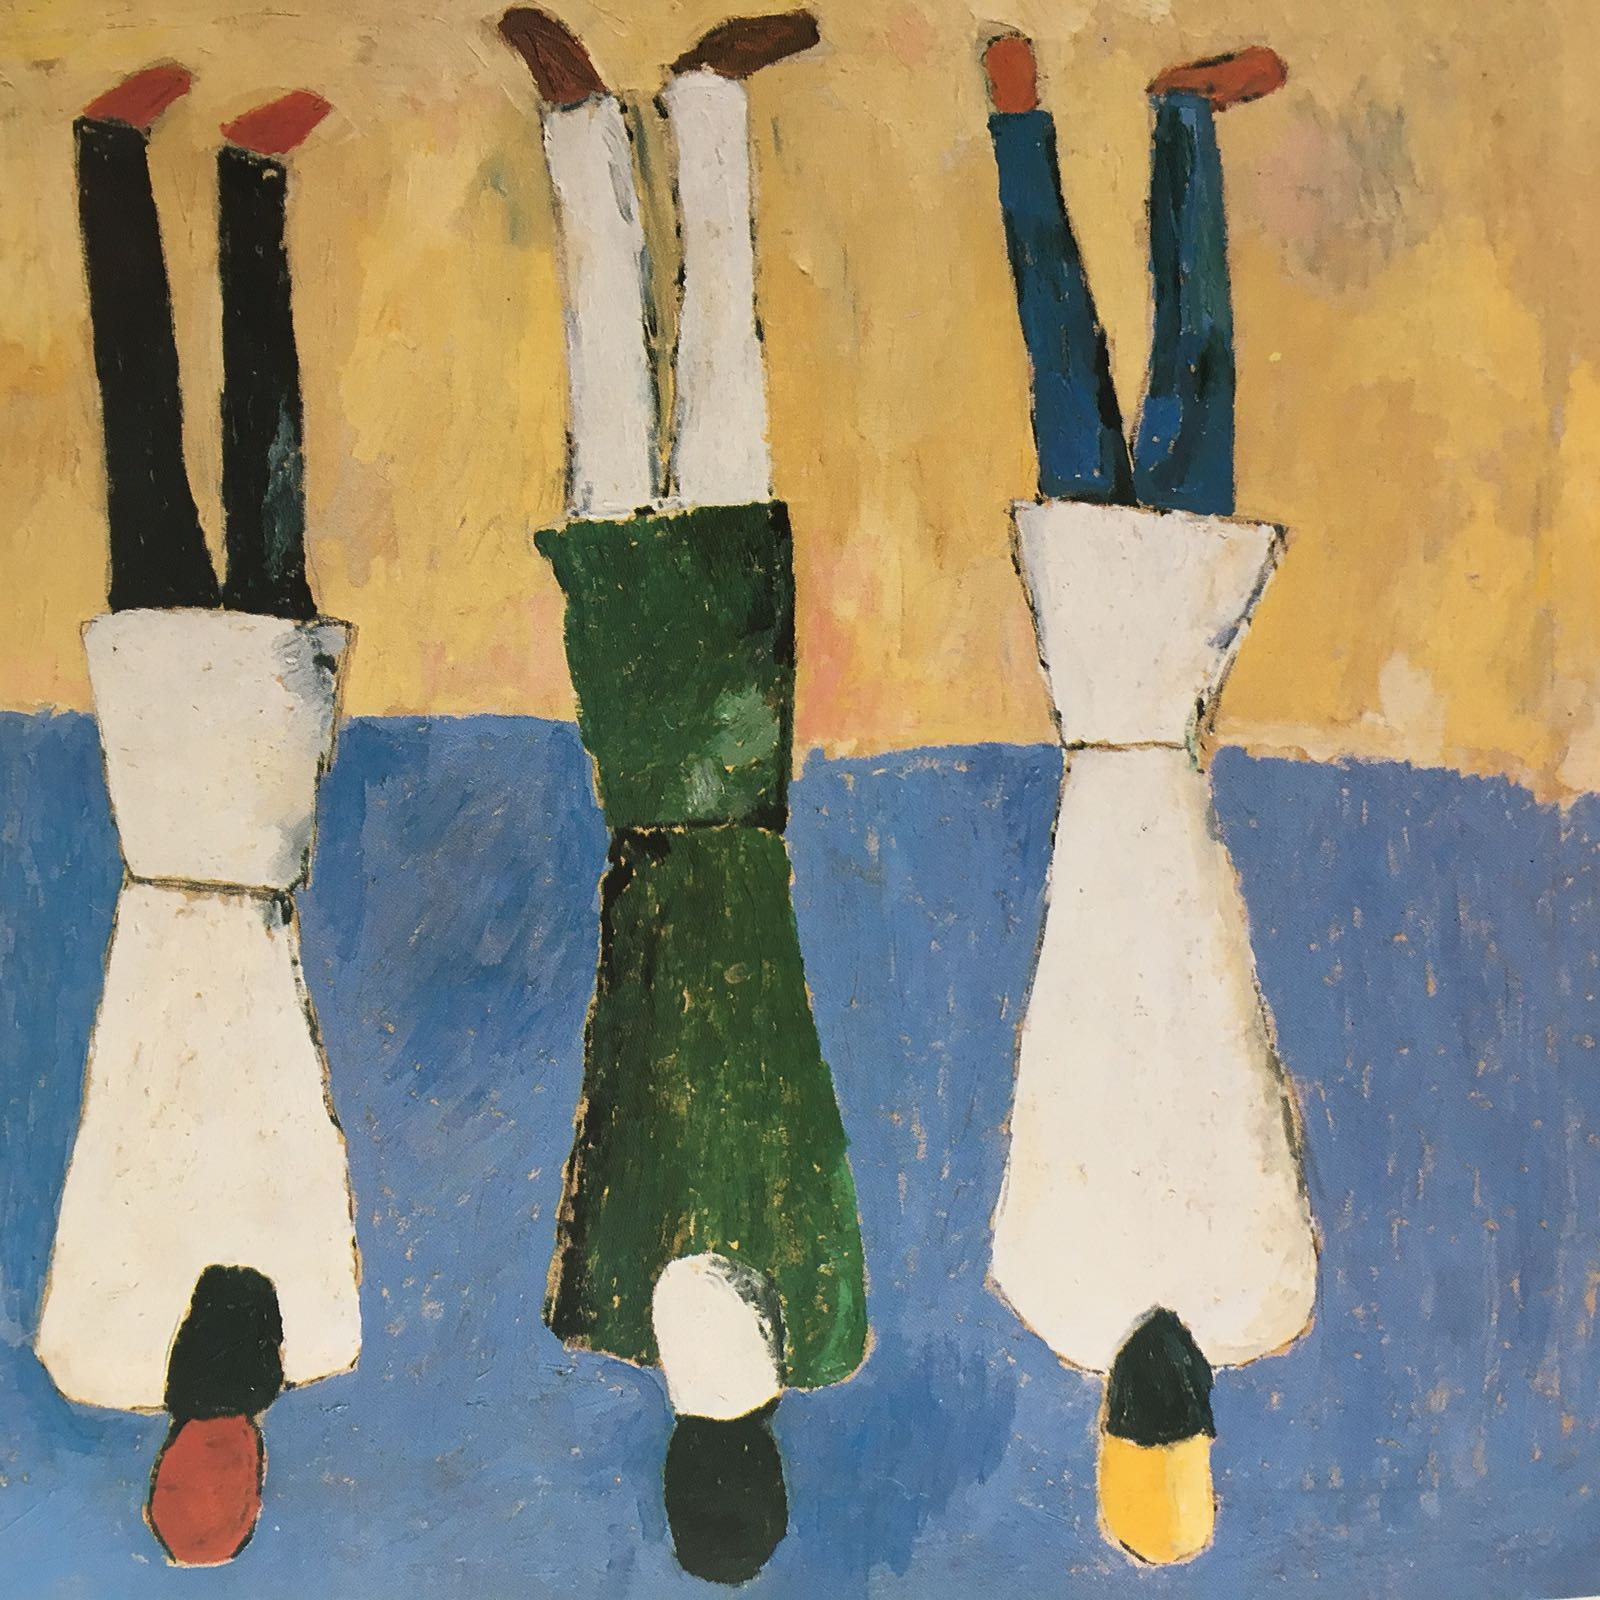 'Peasants' by Malevich